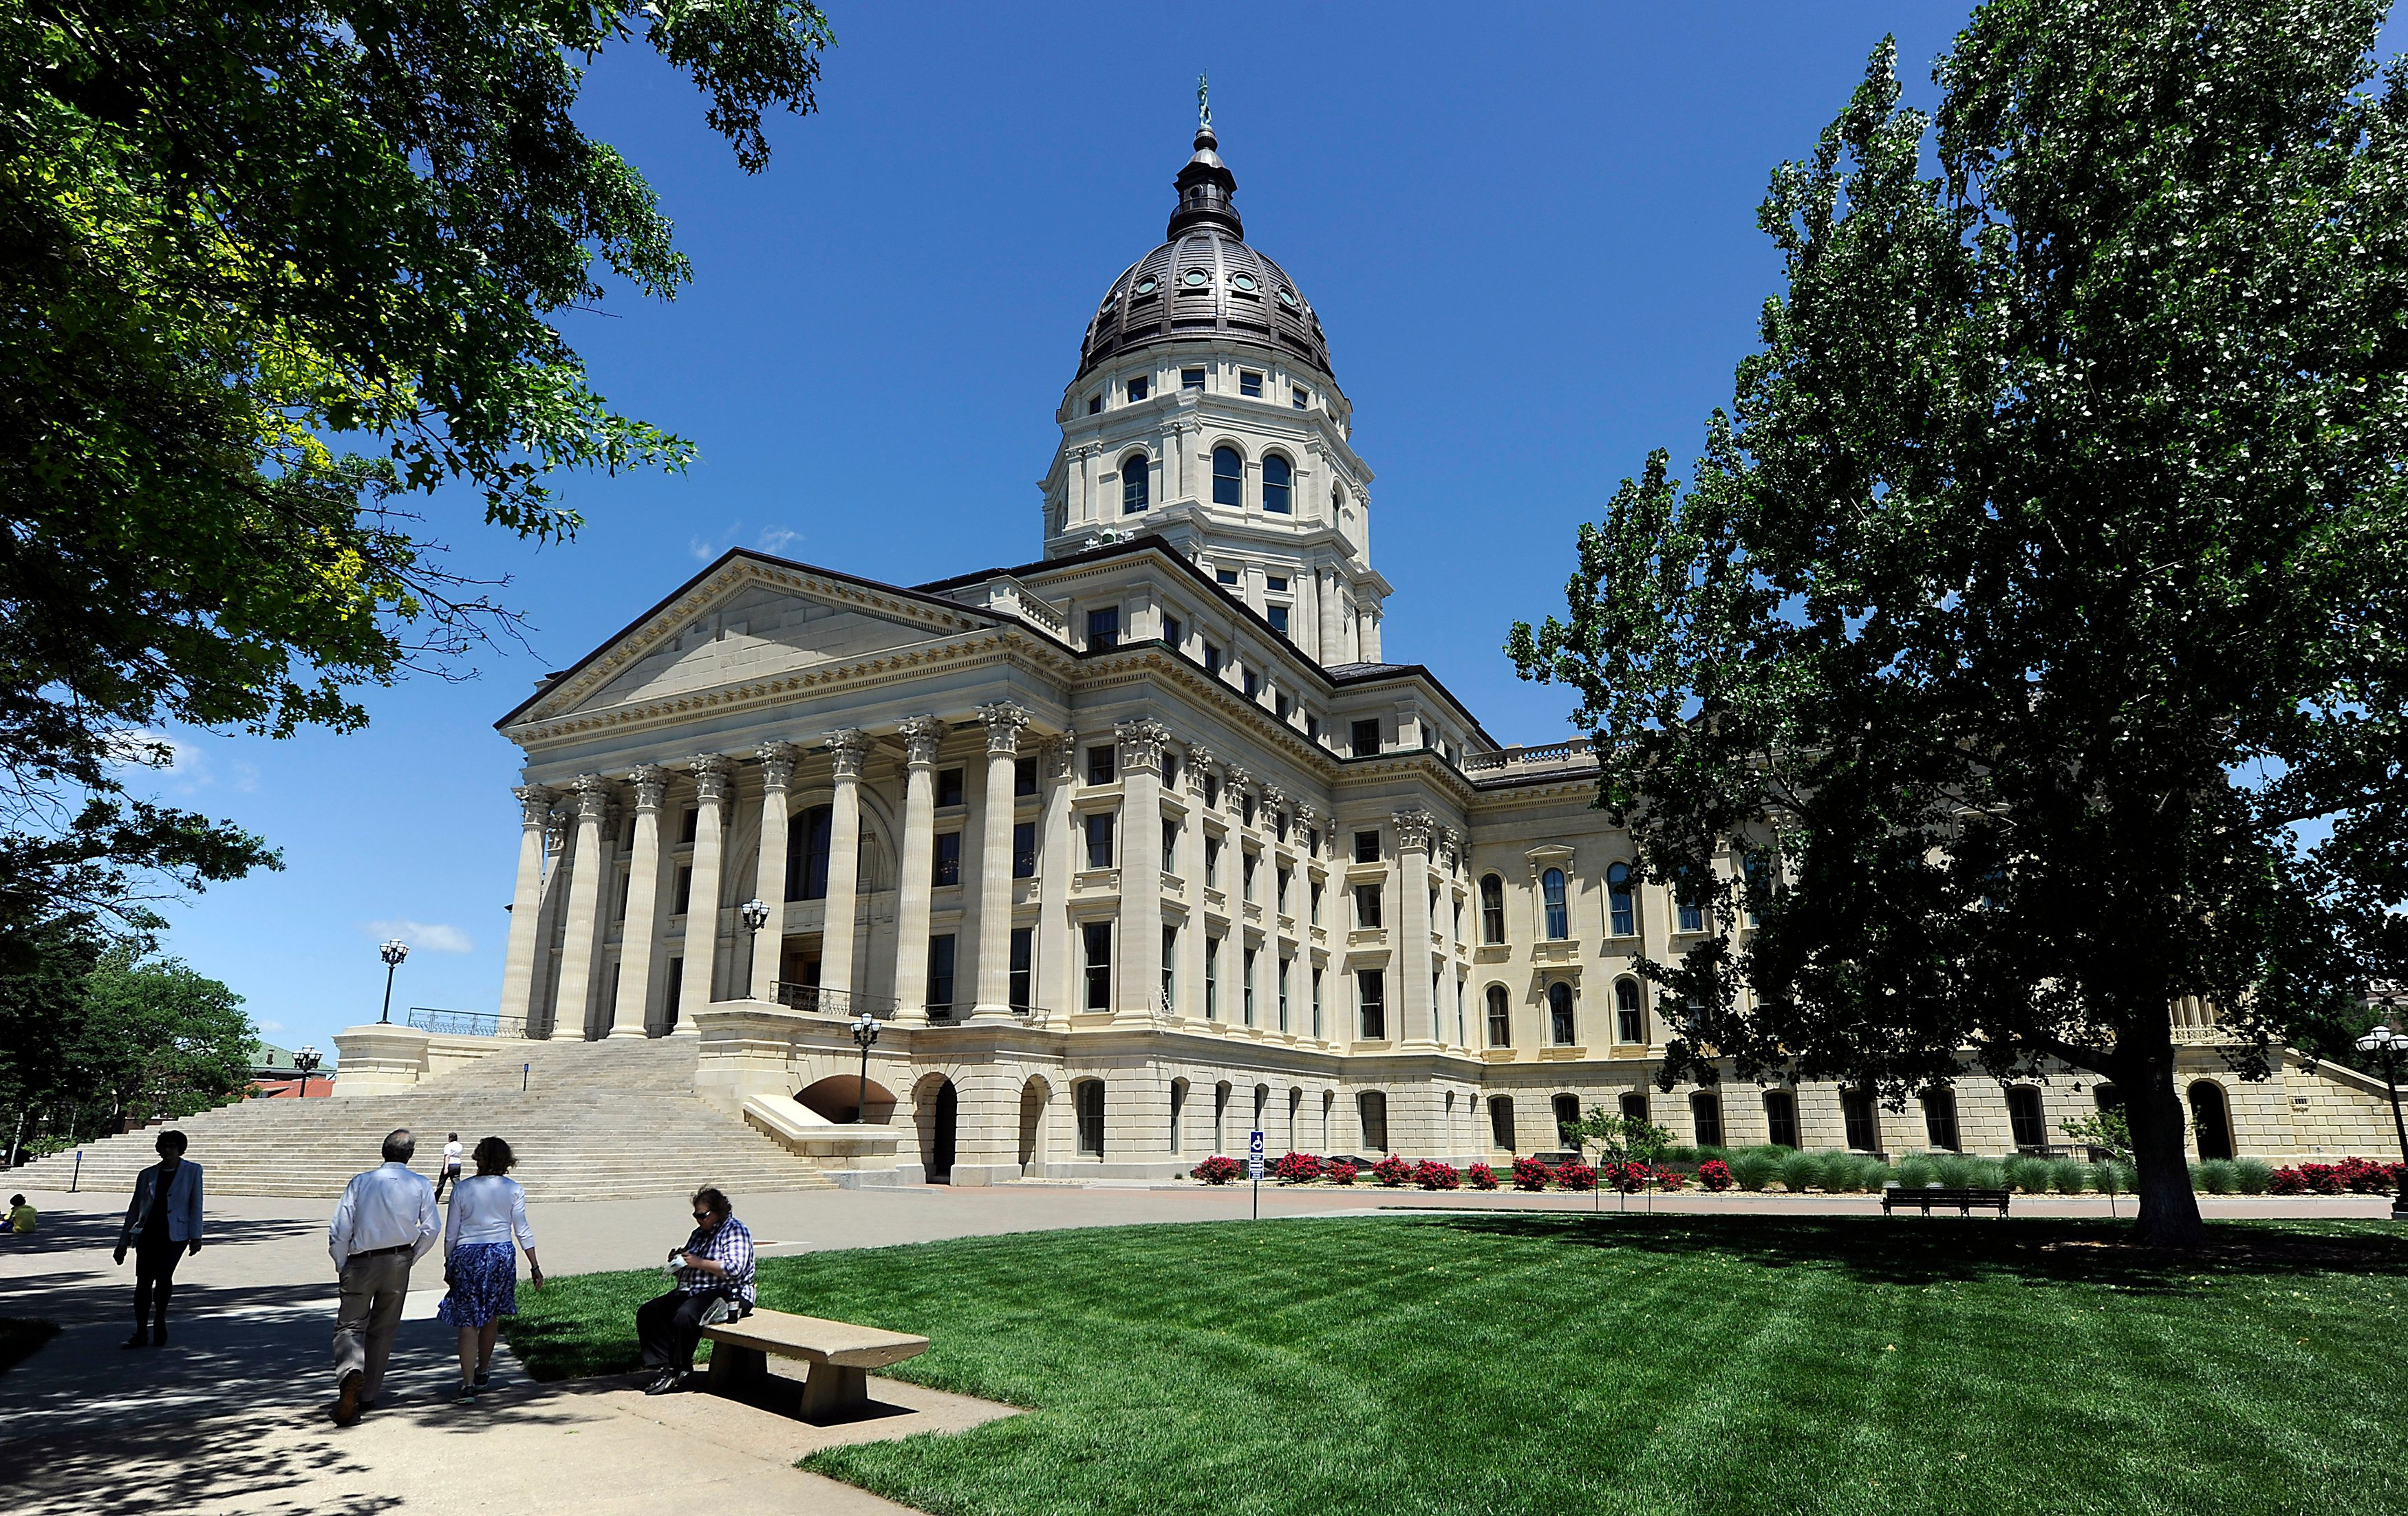 The Kansas State Capitol building in Topeka, Kansas.